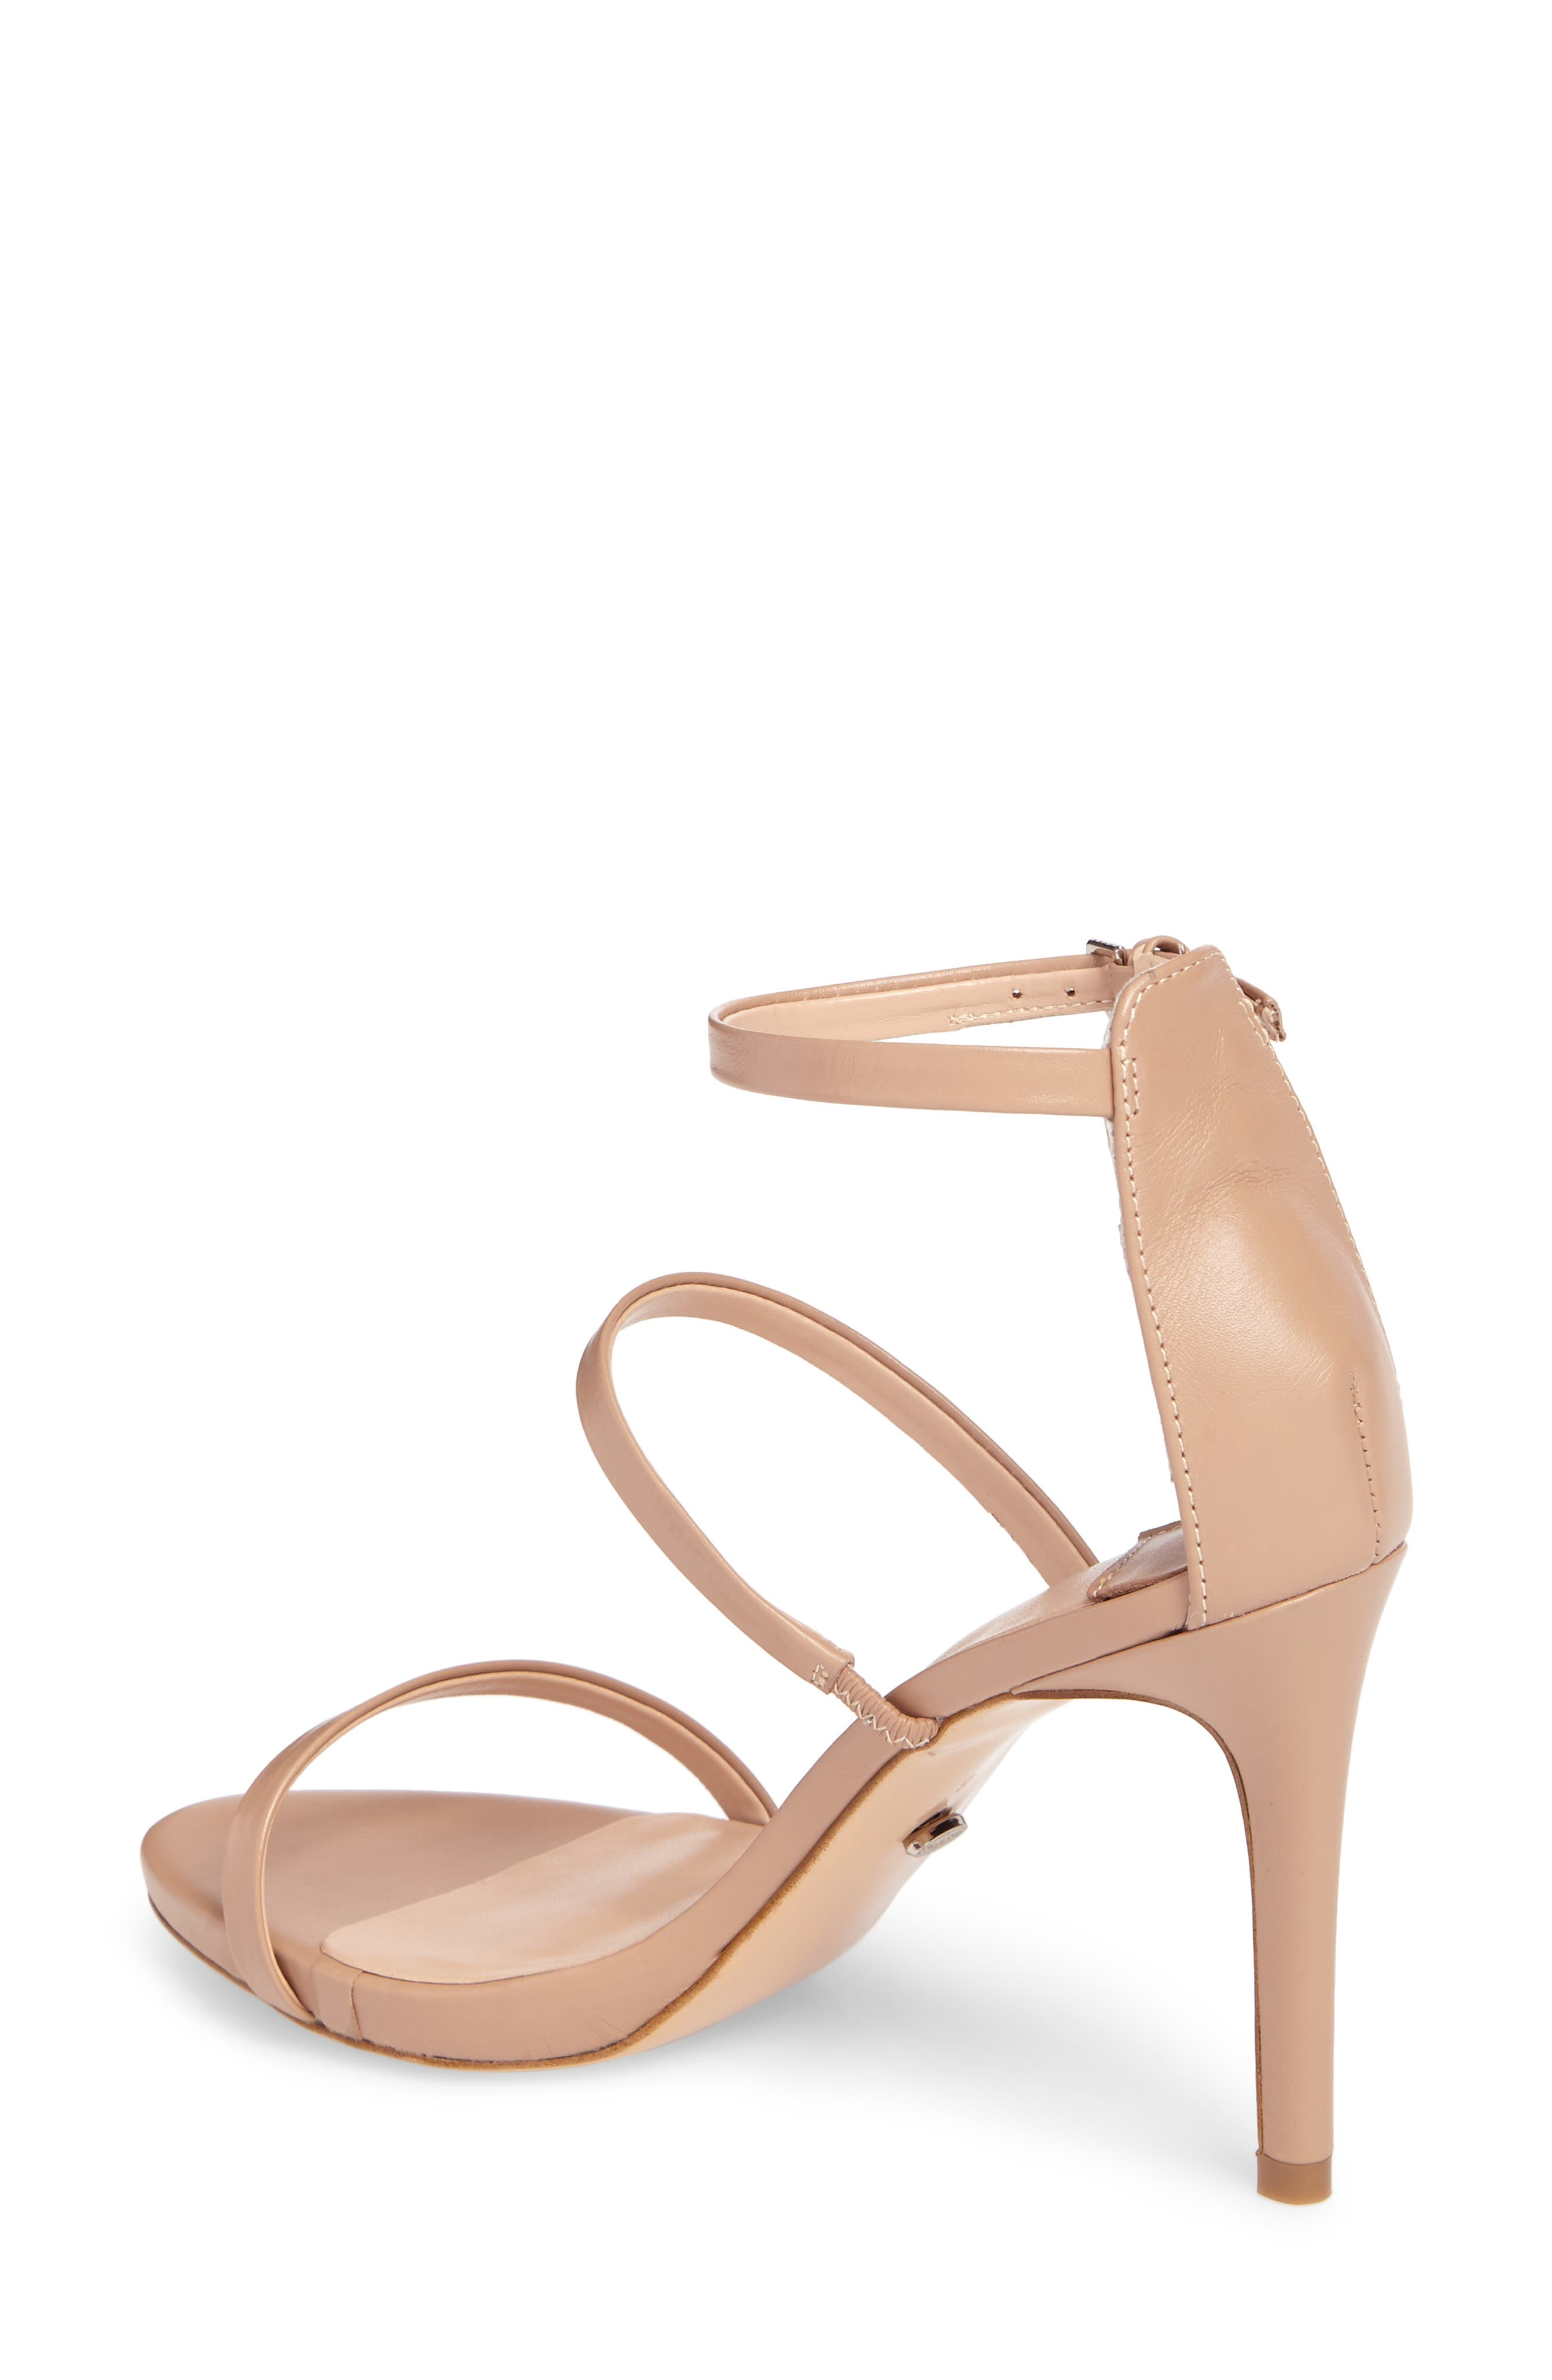 Carey Three-Strap Sandal,                             Alternate thumbnail 2, color,                             SKIN CAPRETTO LEATHER